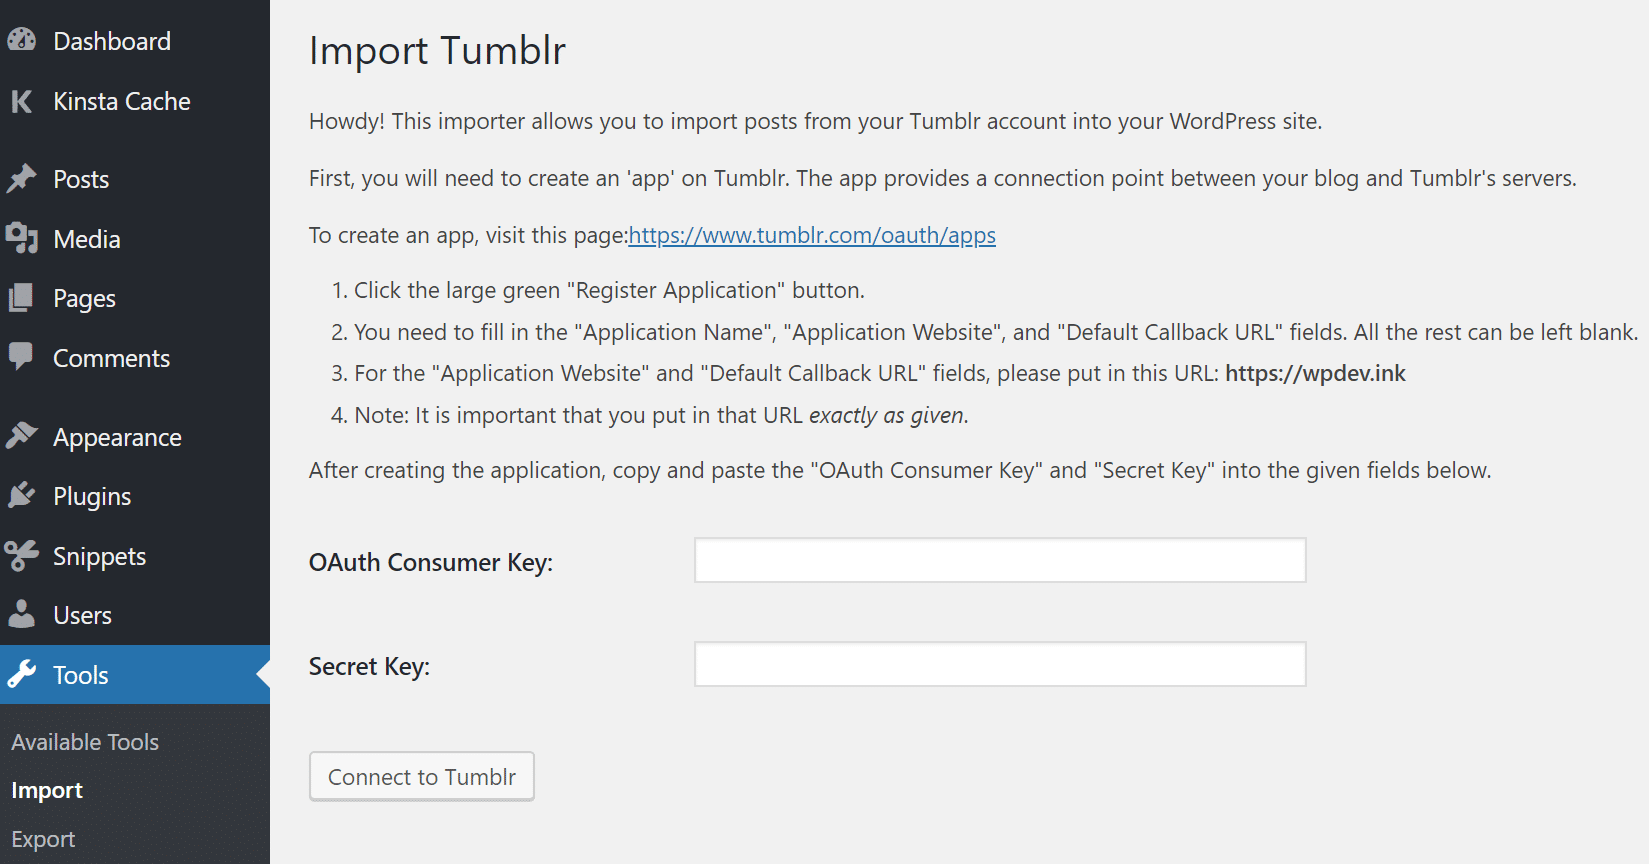 Import Tumblr settings